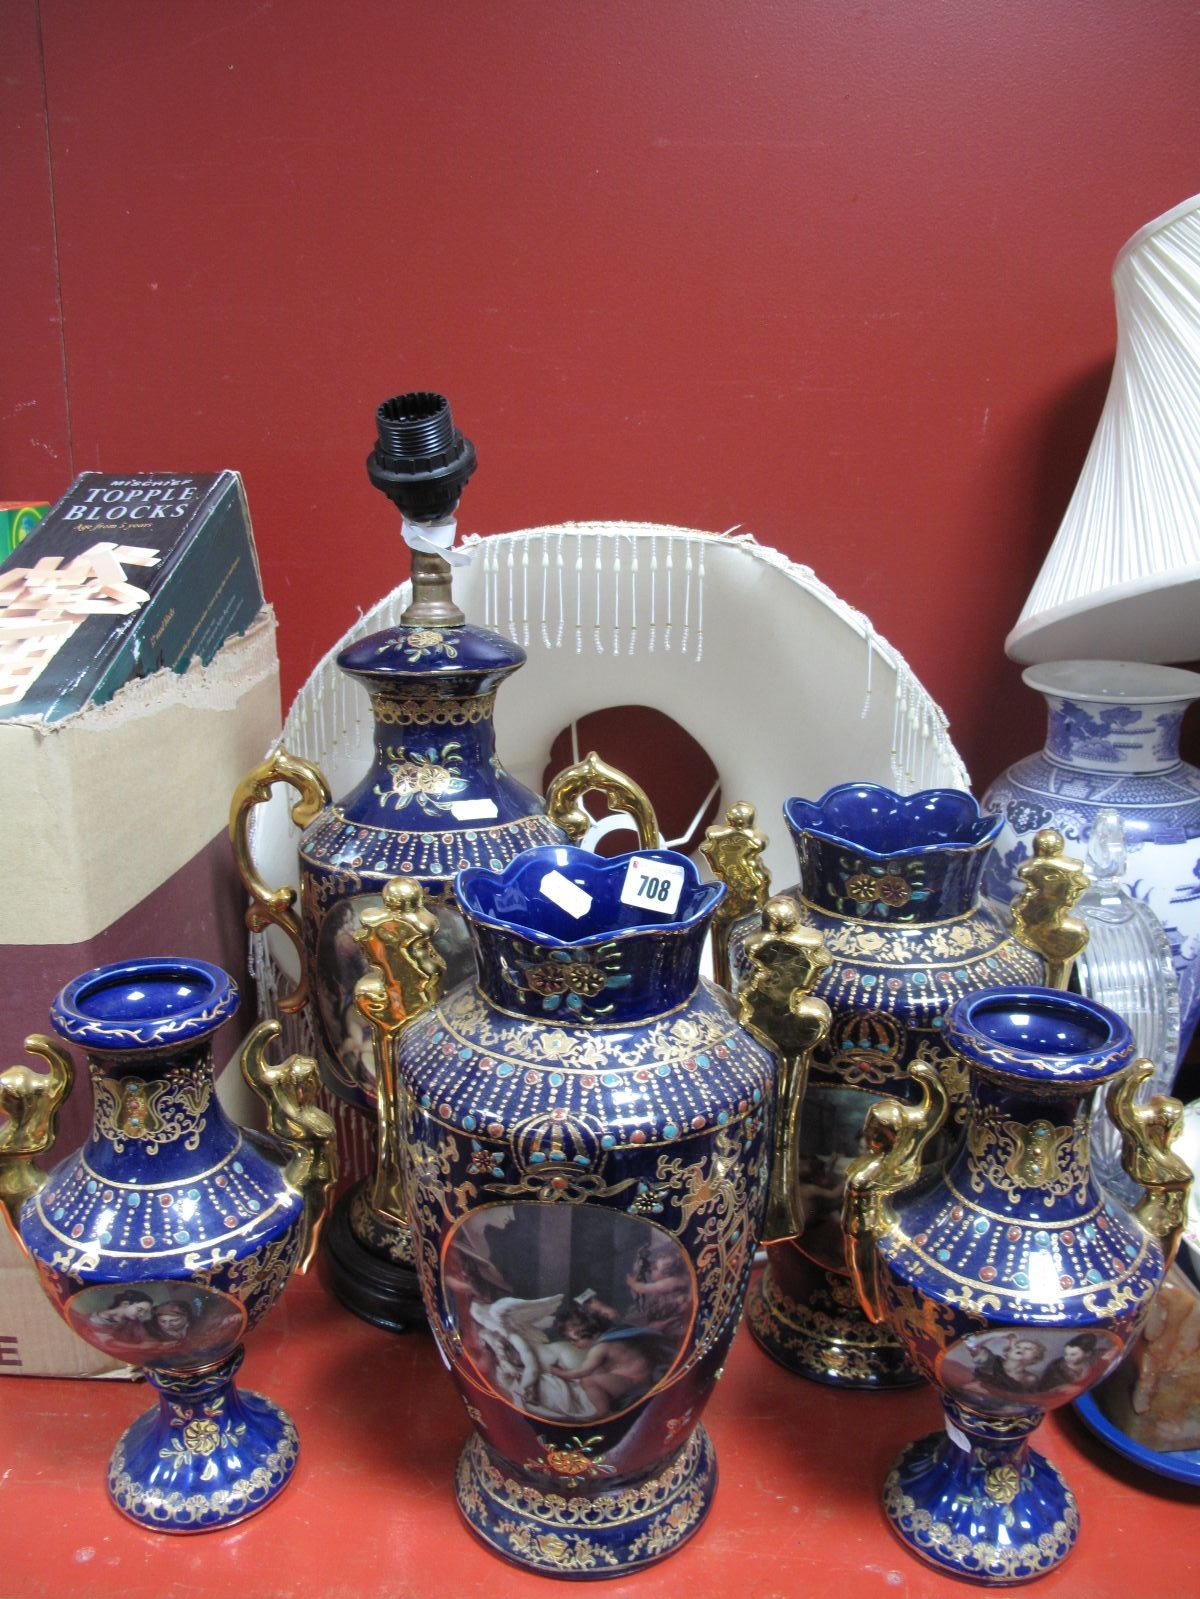 Lot 708 - A Chinese Pottery Lamp, in the XIX Century Sevres manner, two pairs of similar vases. (5)